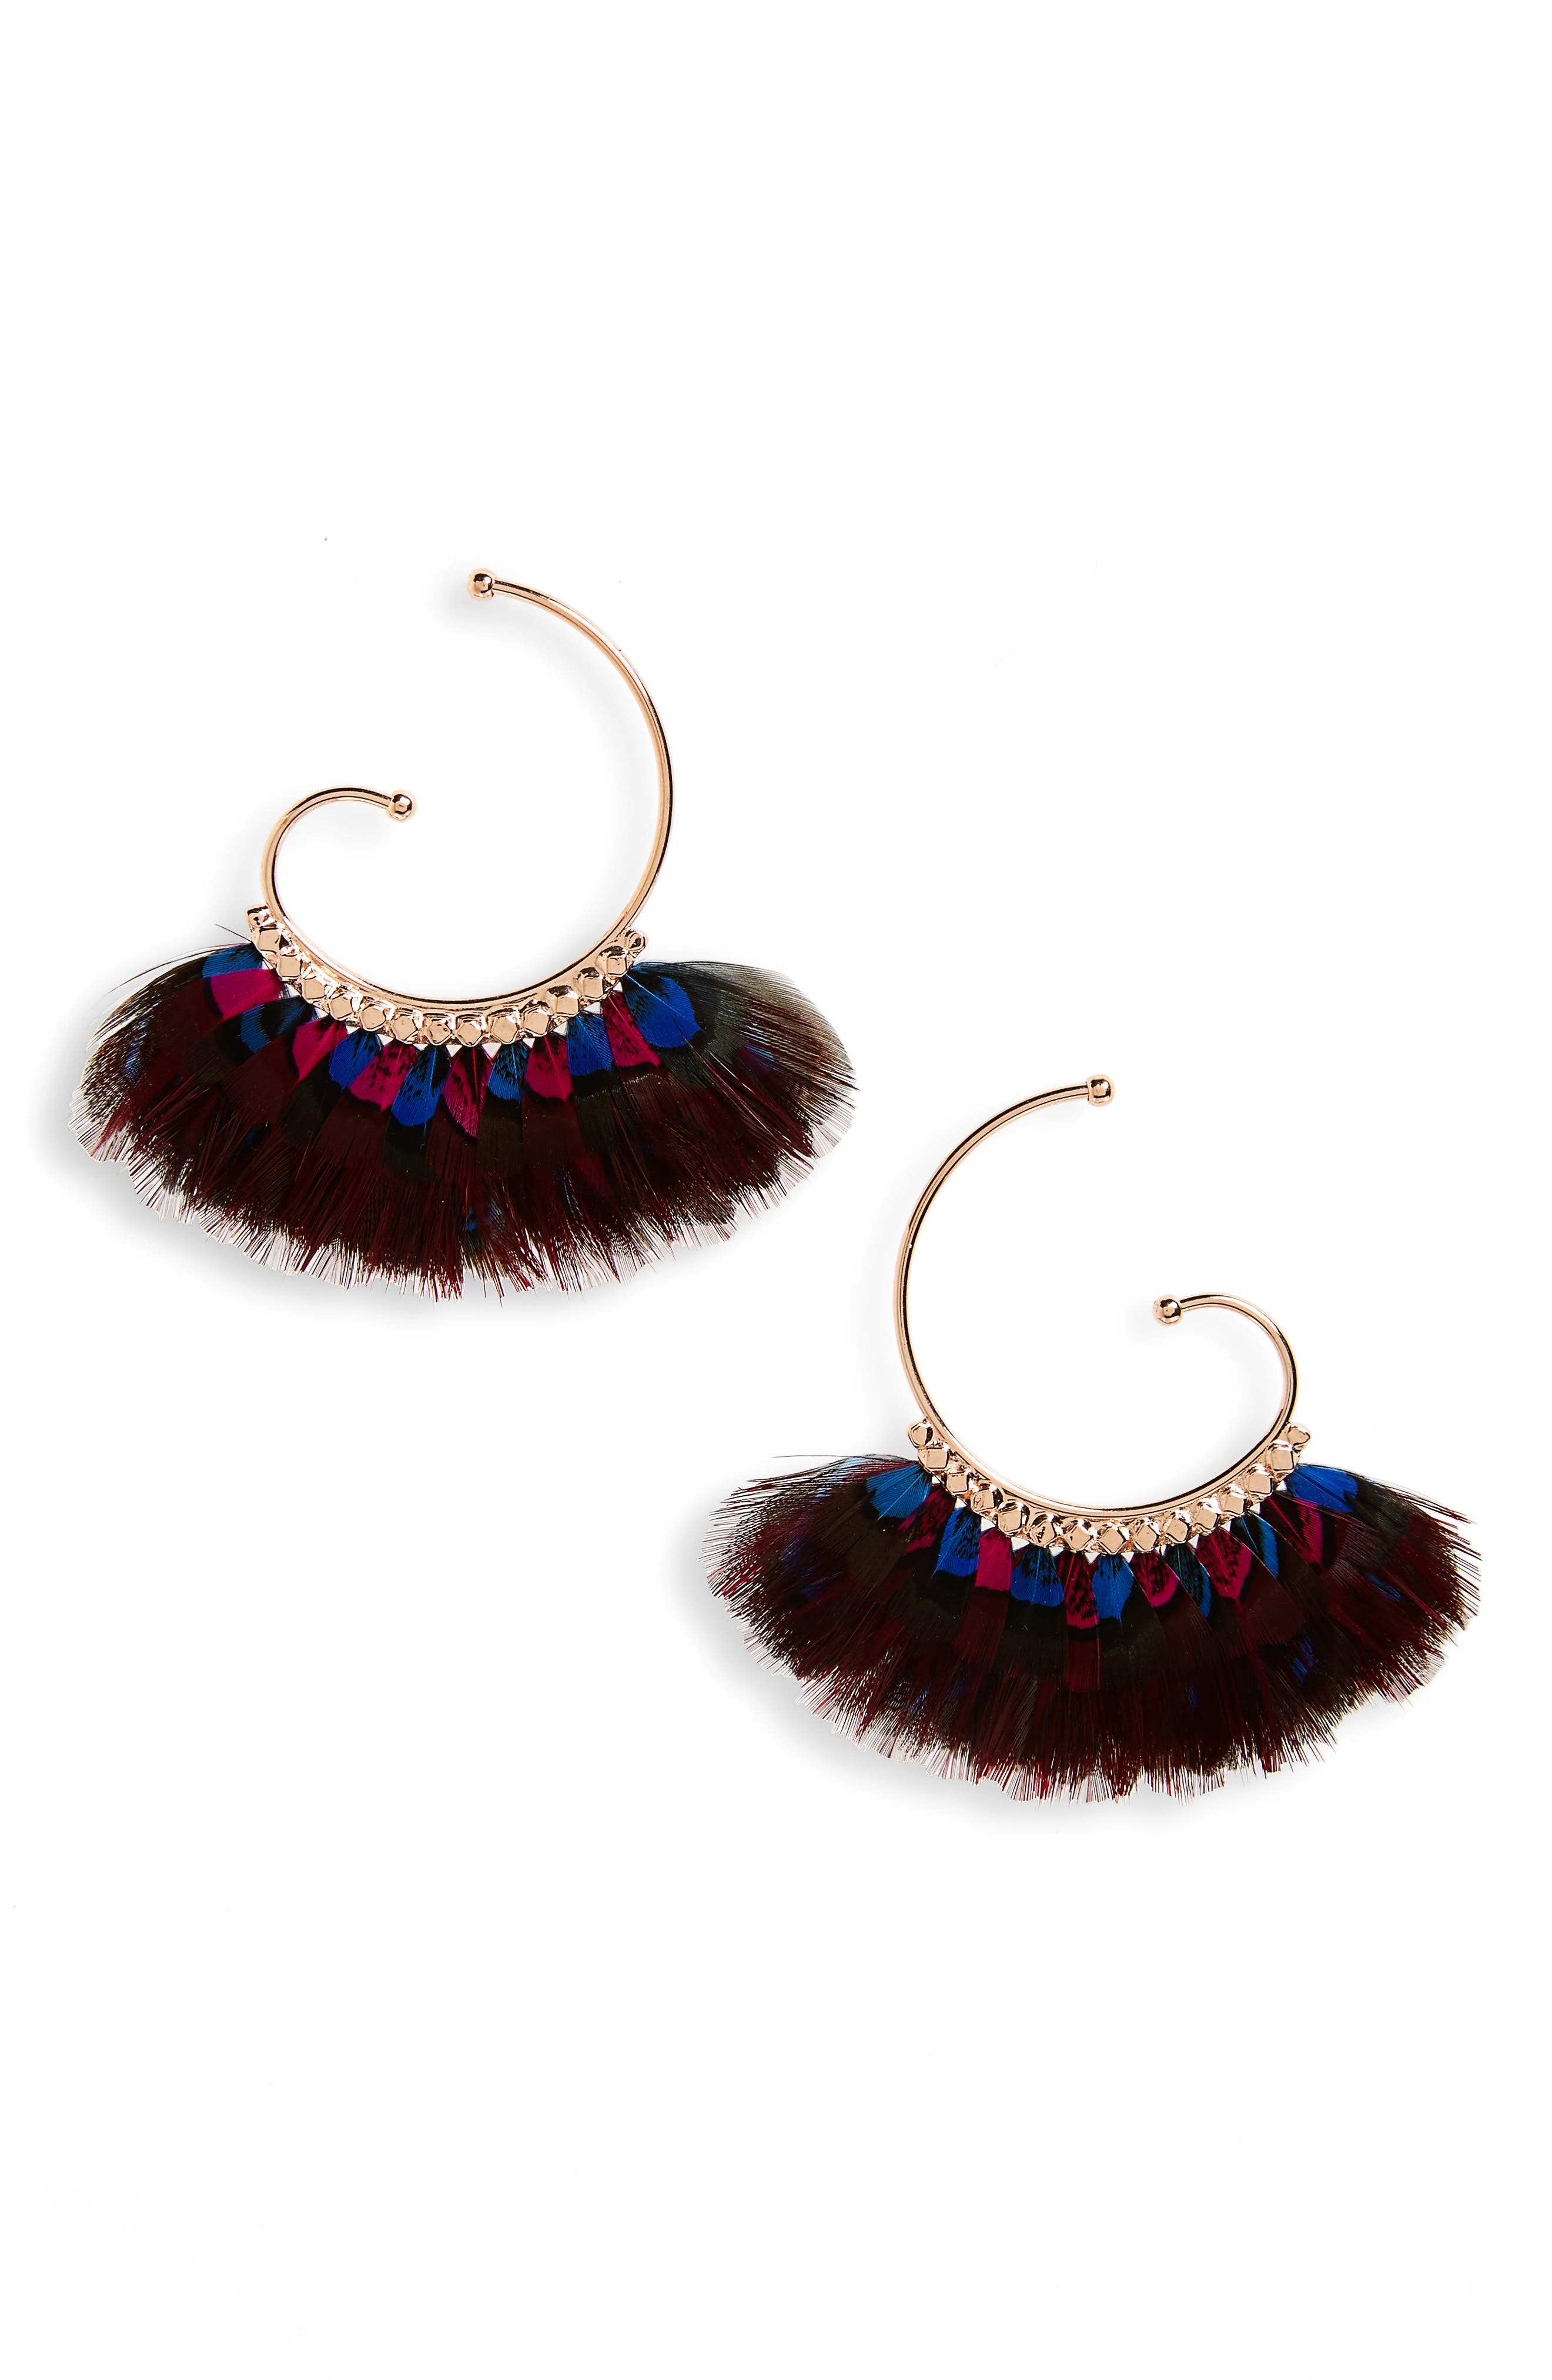 'Buzios' Feather Earrings,                         Main,                         color, Red/ Blue